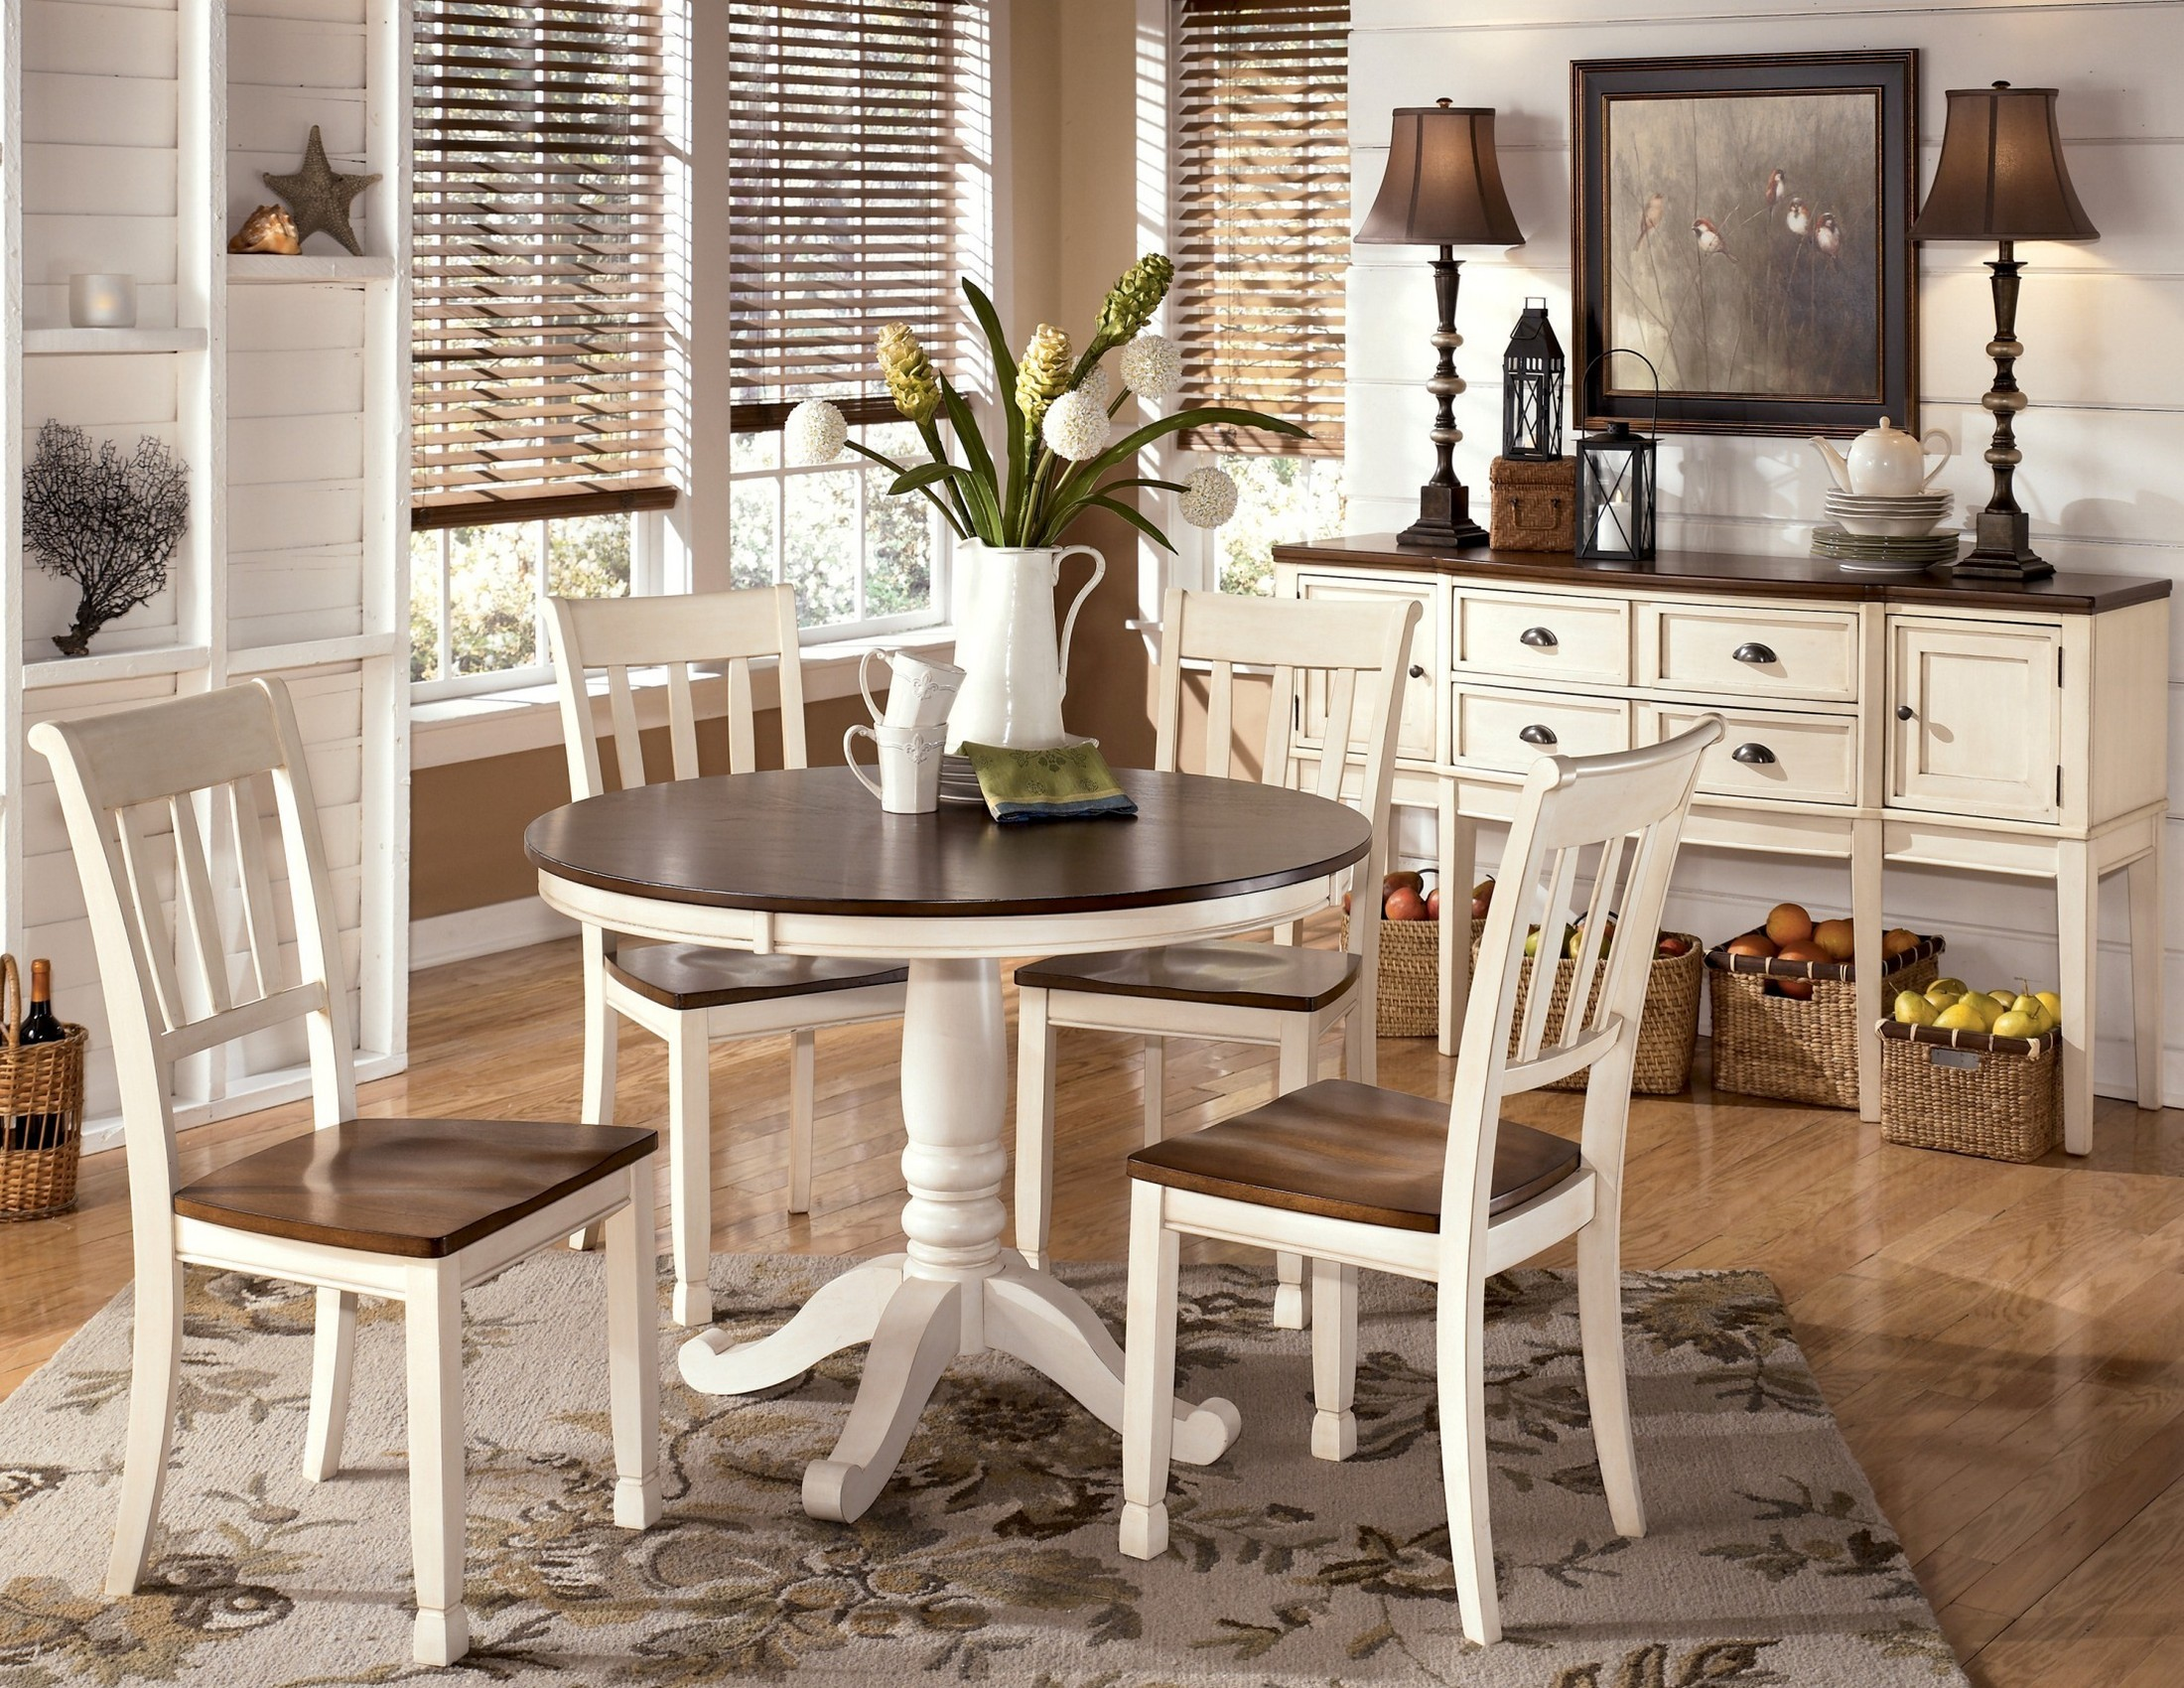 Whitesburg Round Dining Room Set From Ashley D583 15b 15t